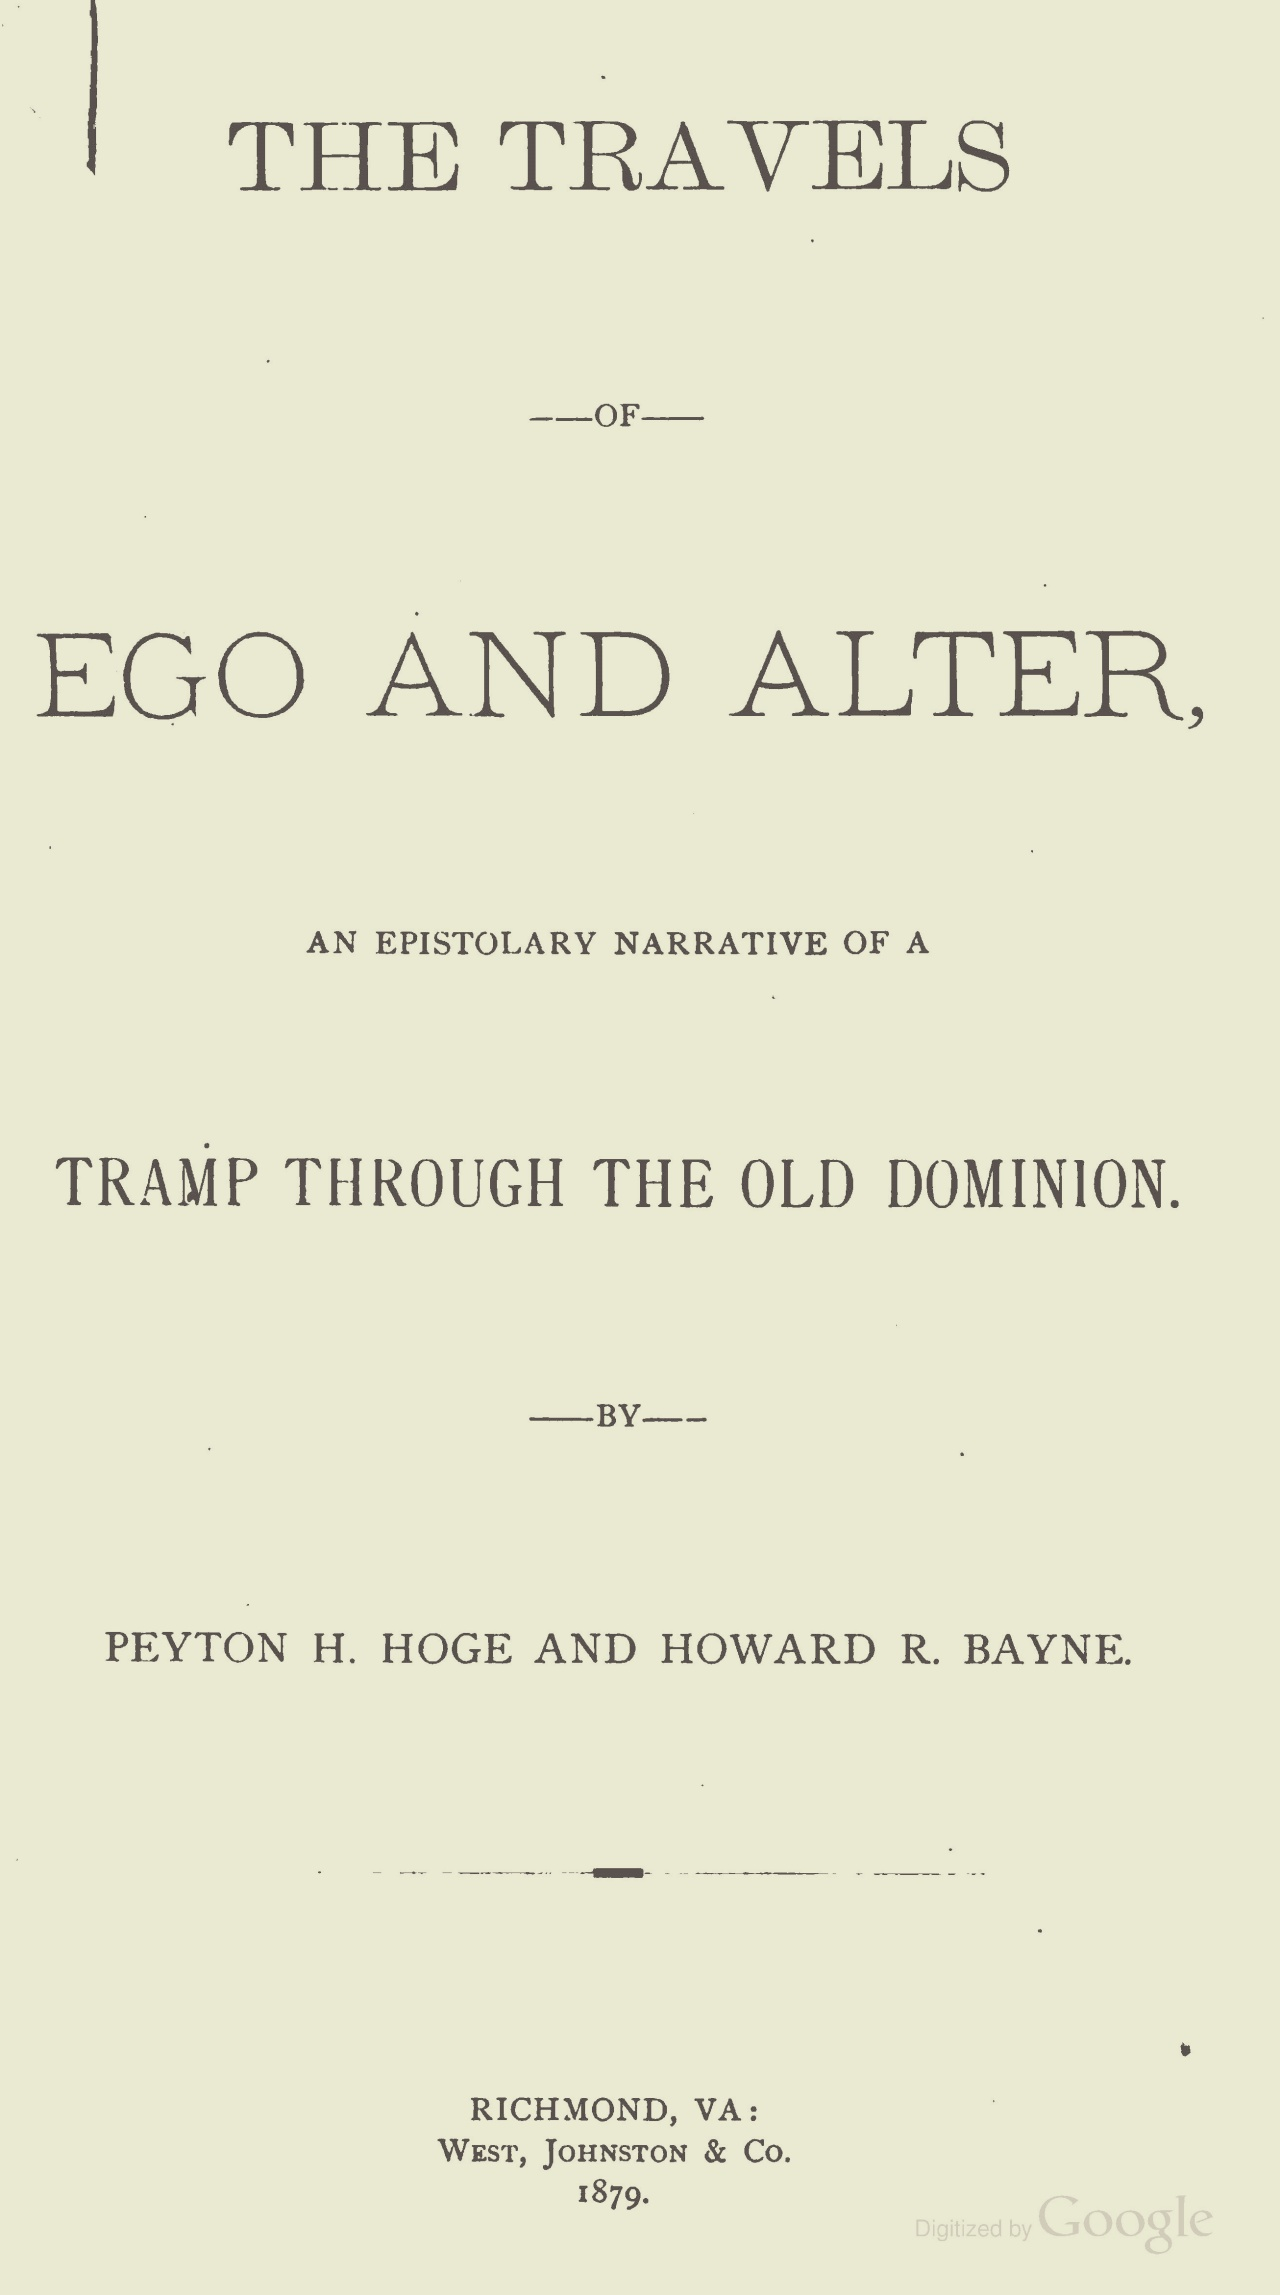 Hoge, Peyton Harrison, The Travels of Ego and Alter Title Page.jpg